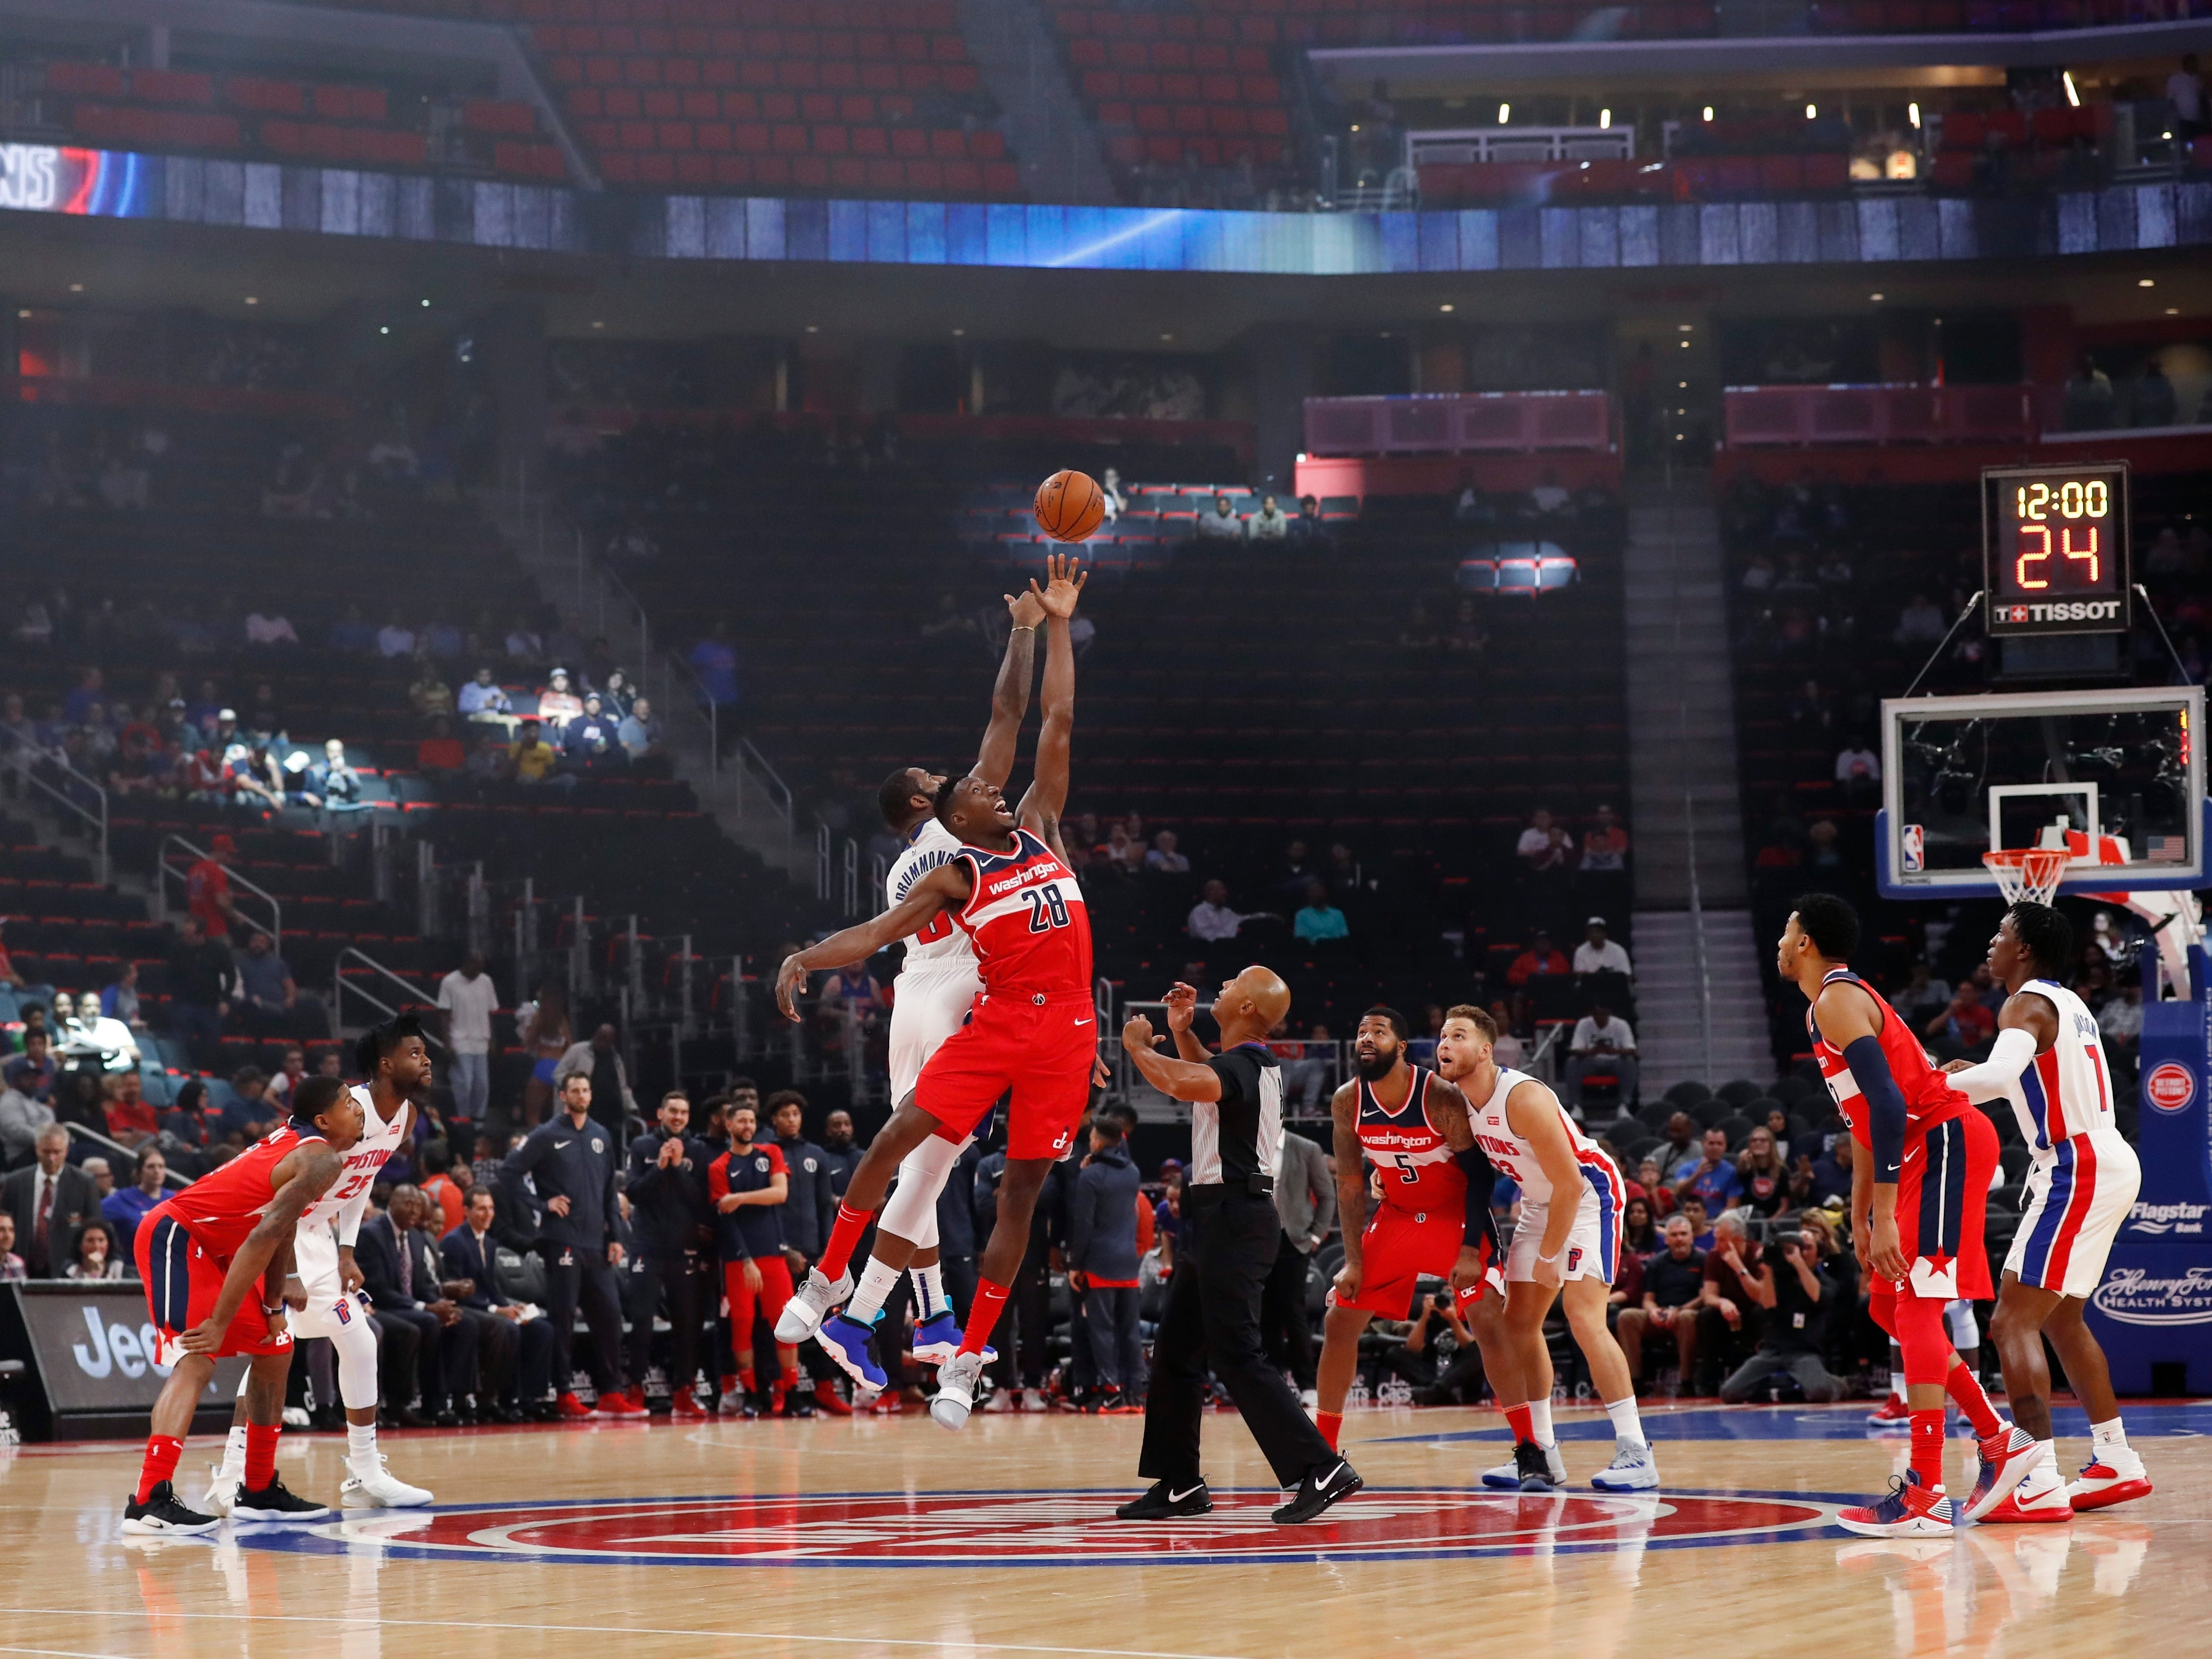 Detroit Pistons center Andre Drummond and Washington Wizards center Ian Mahinmi (28) take the opening tip off during the first half.